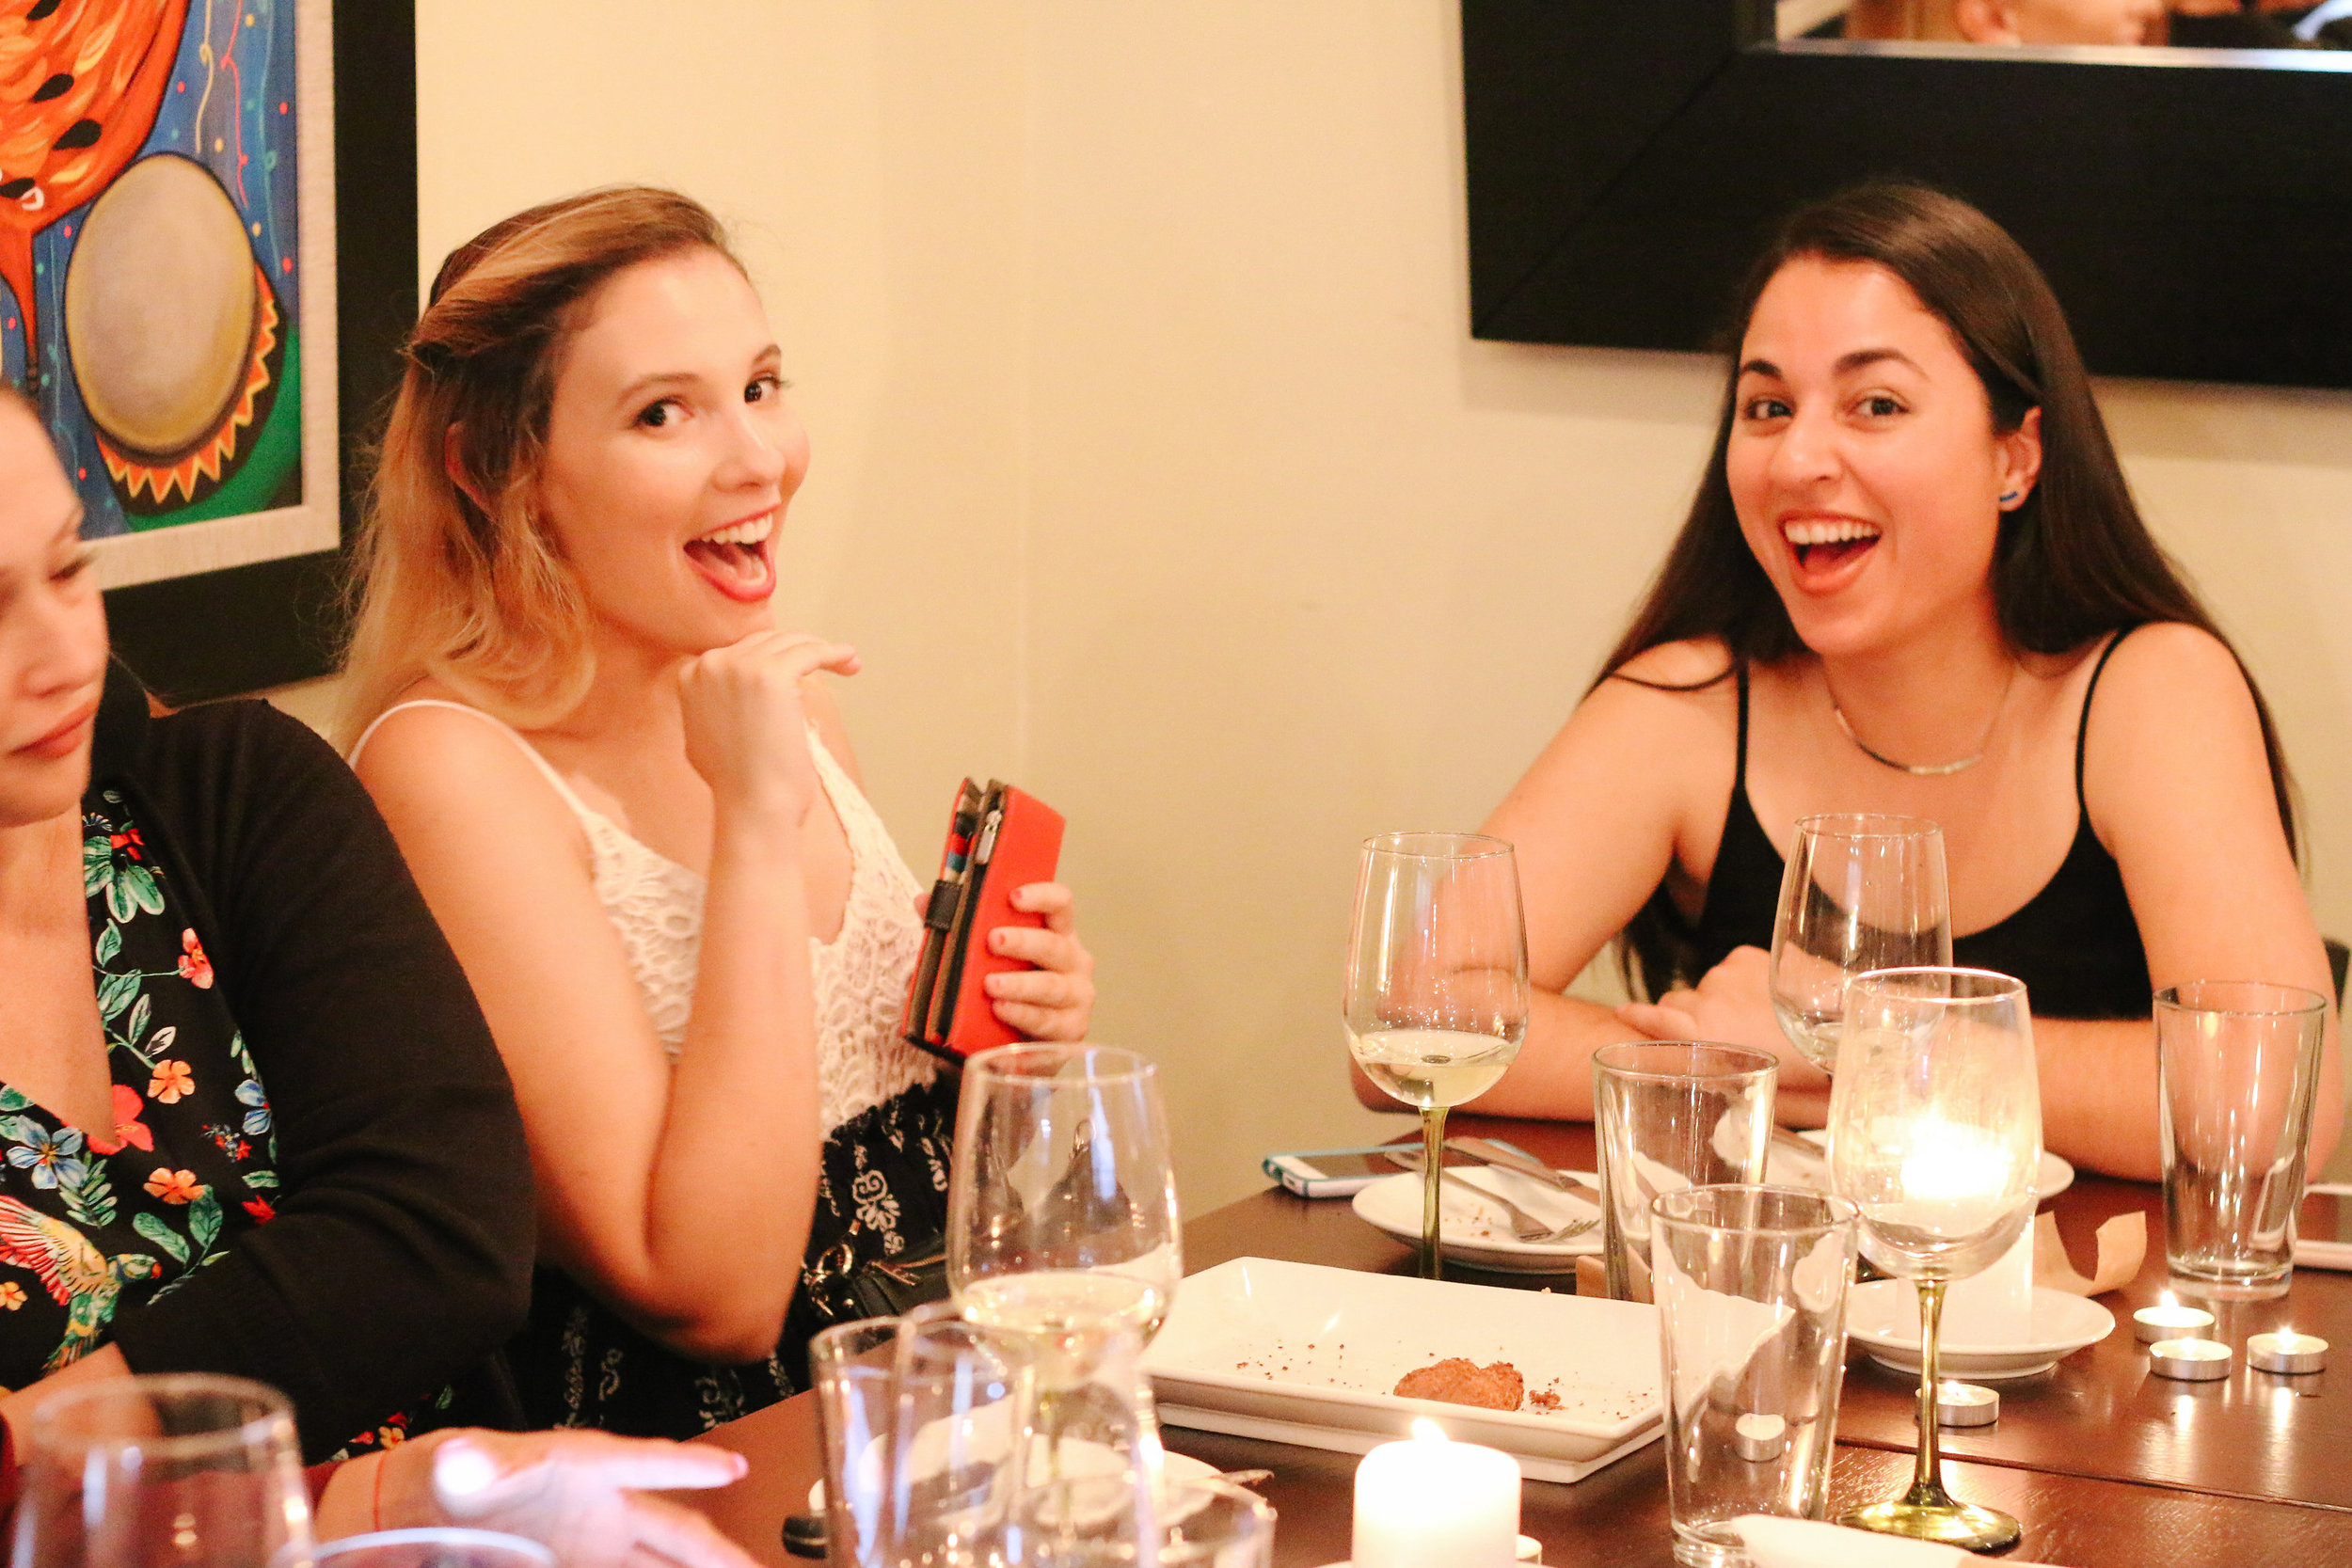 Women Who Wine_Uncorked Conversations_Off The Mile_Miami Wine Events_Wine Tasting Miami_37.jpg